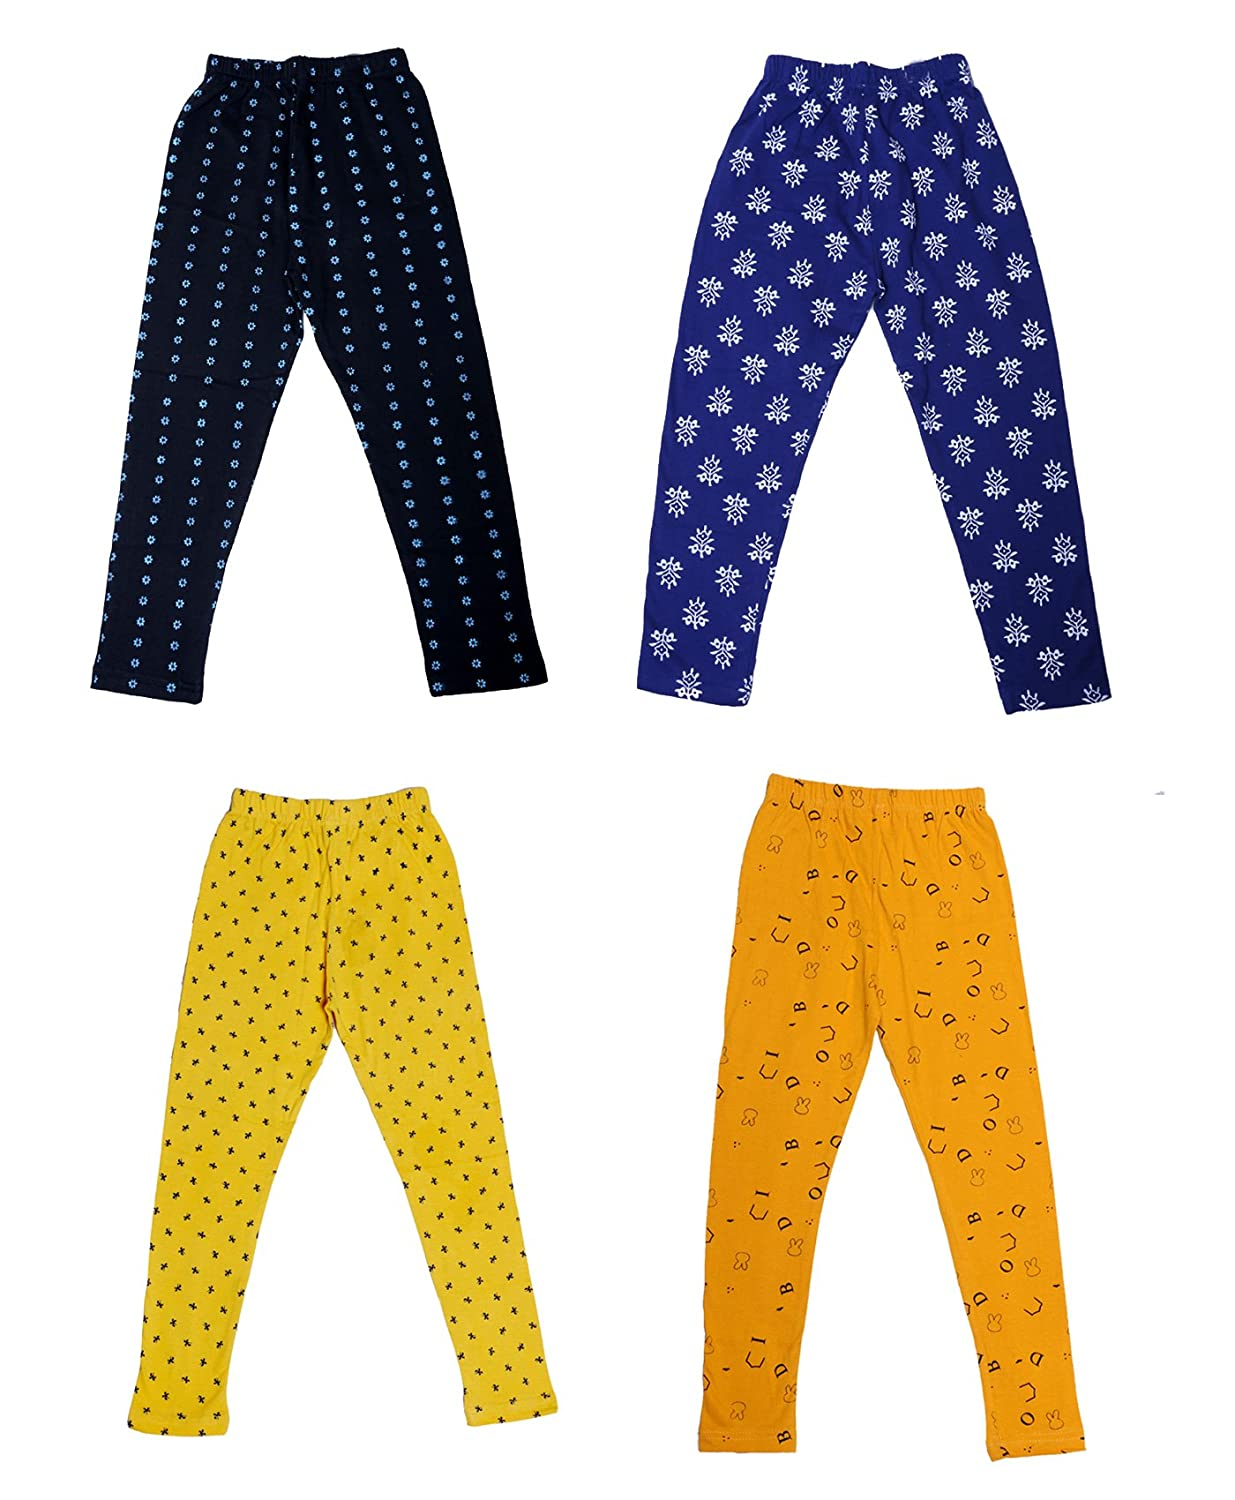 Pack of 4 Indistar Girls Super Soft and Stylish Cotton Printed Churidar Legging Pants